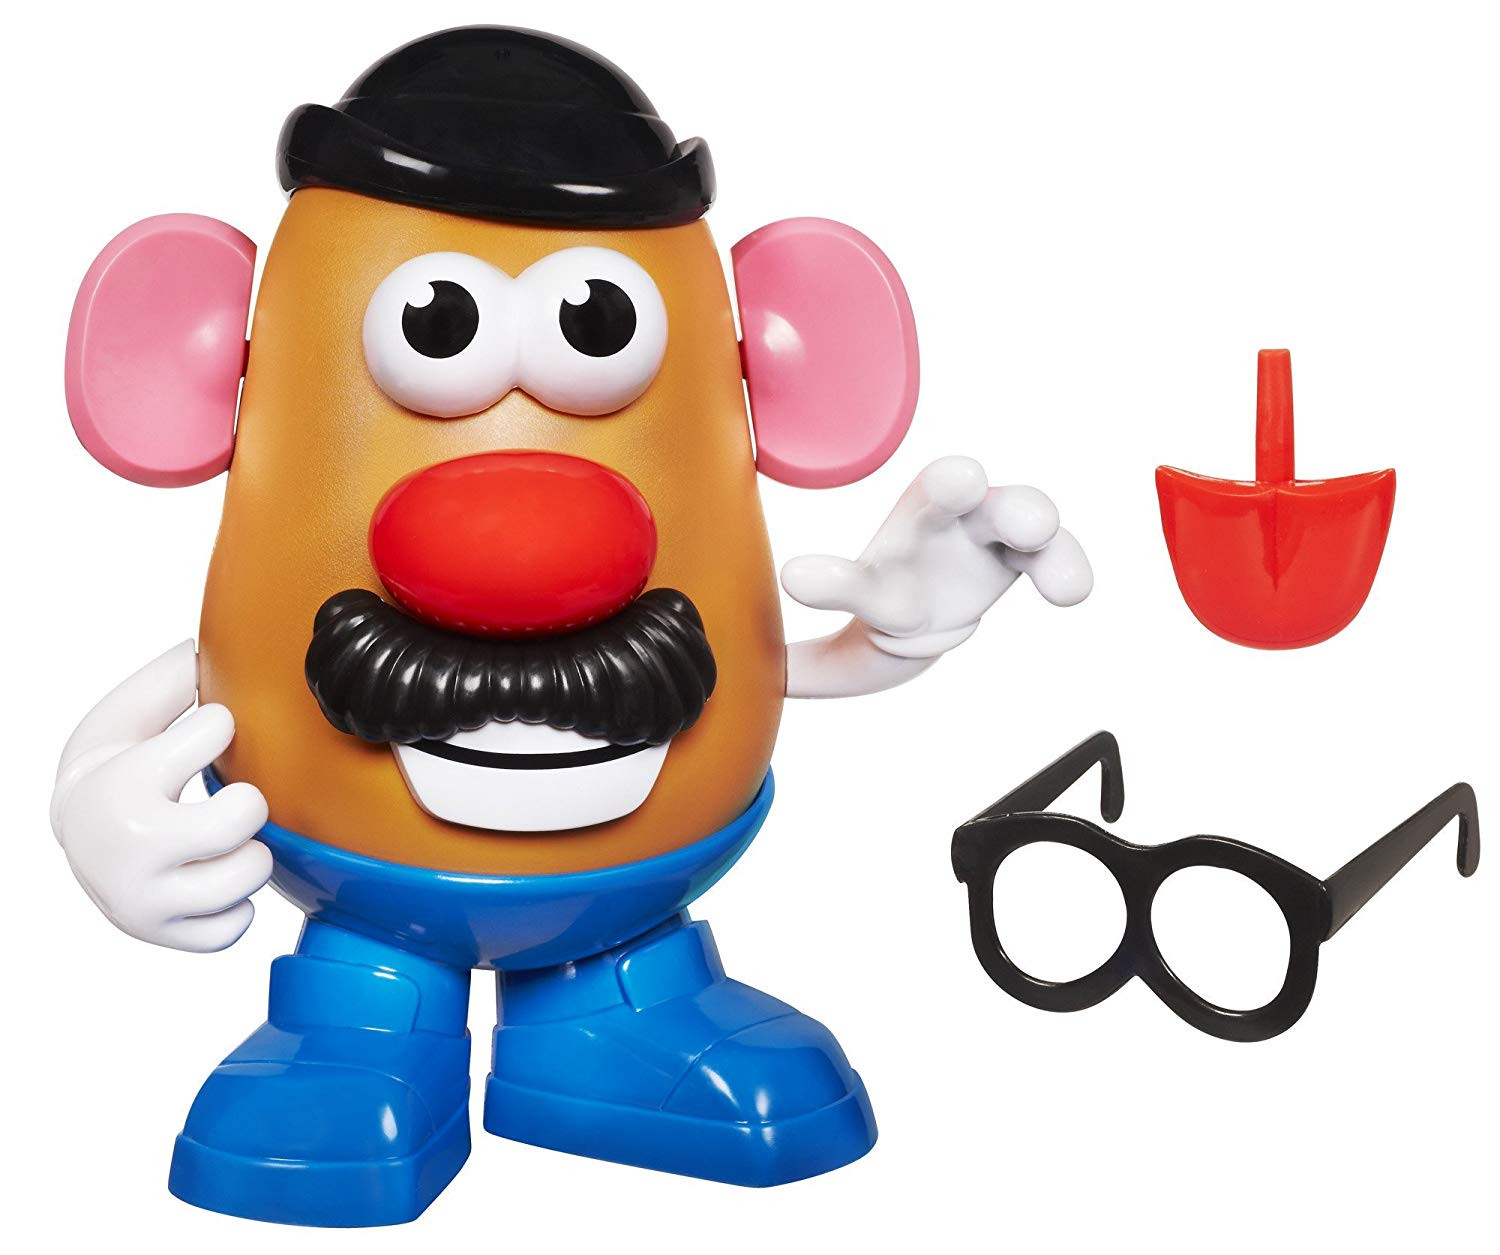 Mister Potato Head  Mr And Mrs Potato Head Craft For A Toy Story Party